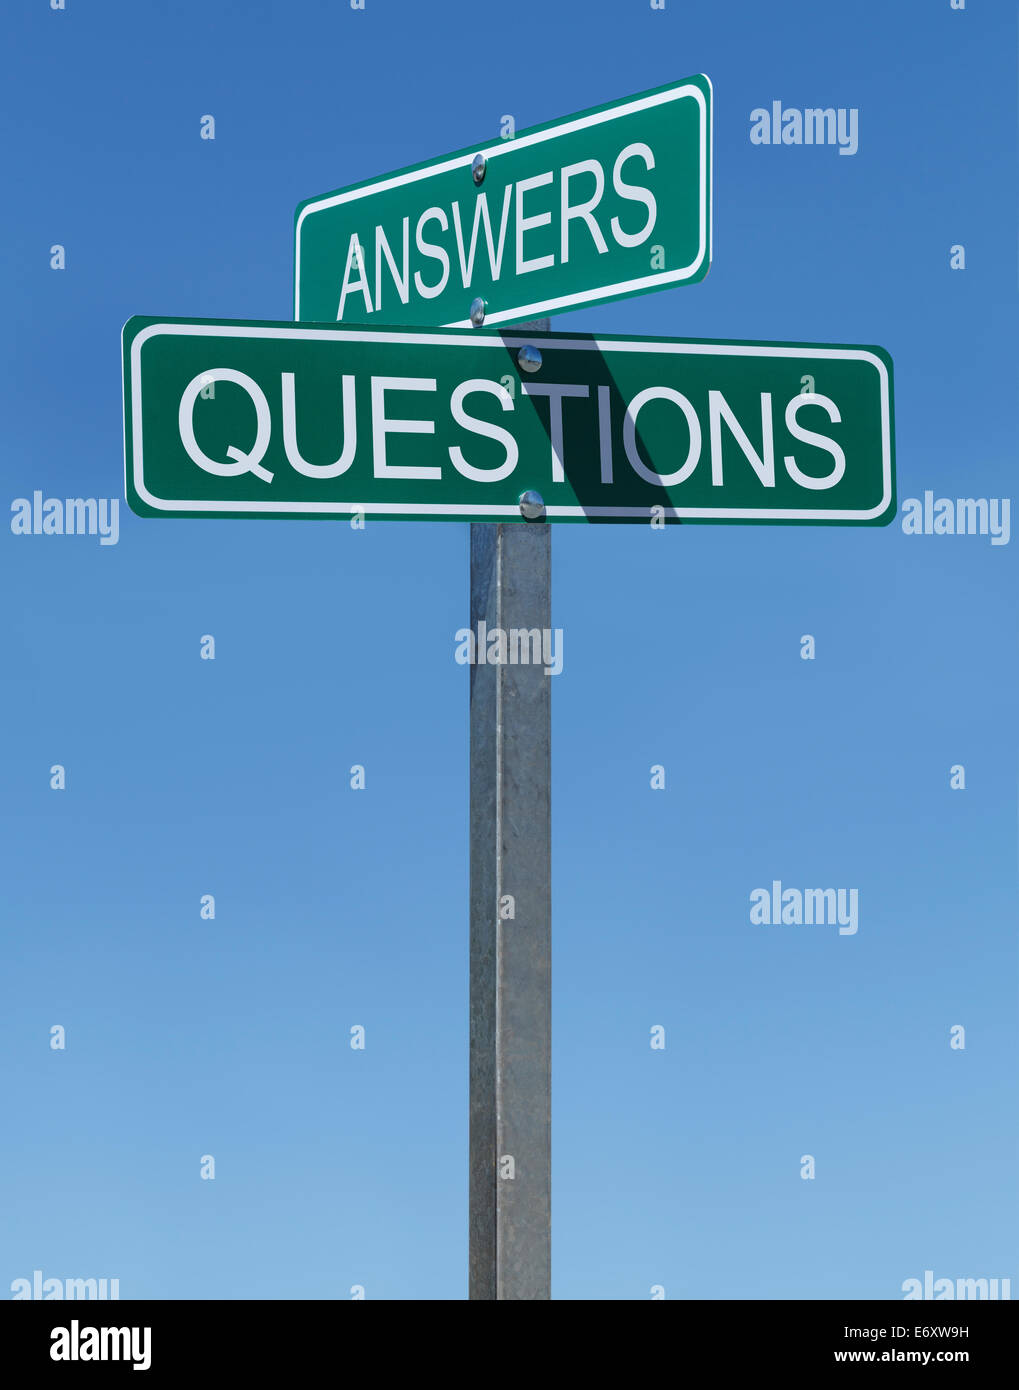 Two Green Street Signs Answers Questions on Metal Pole With